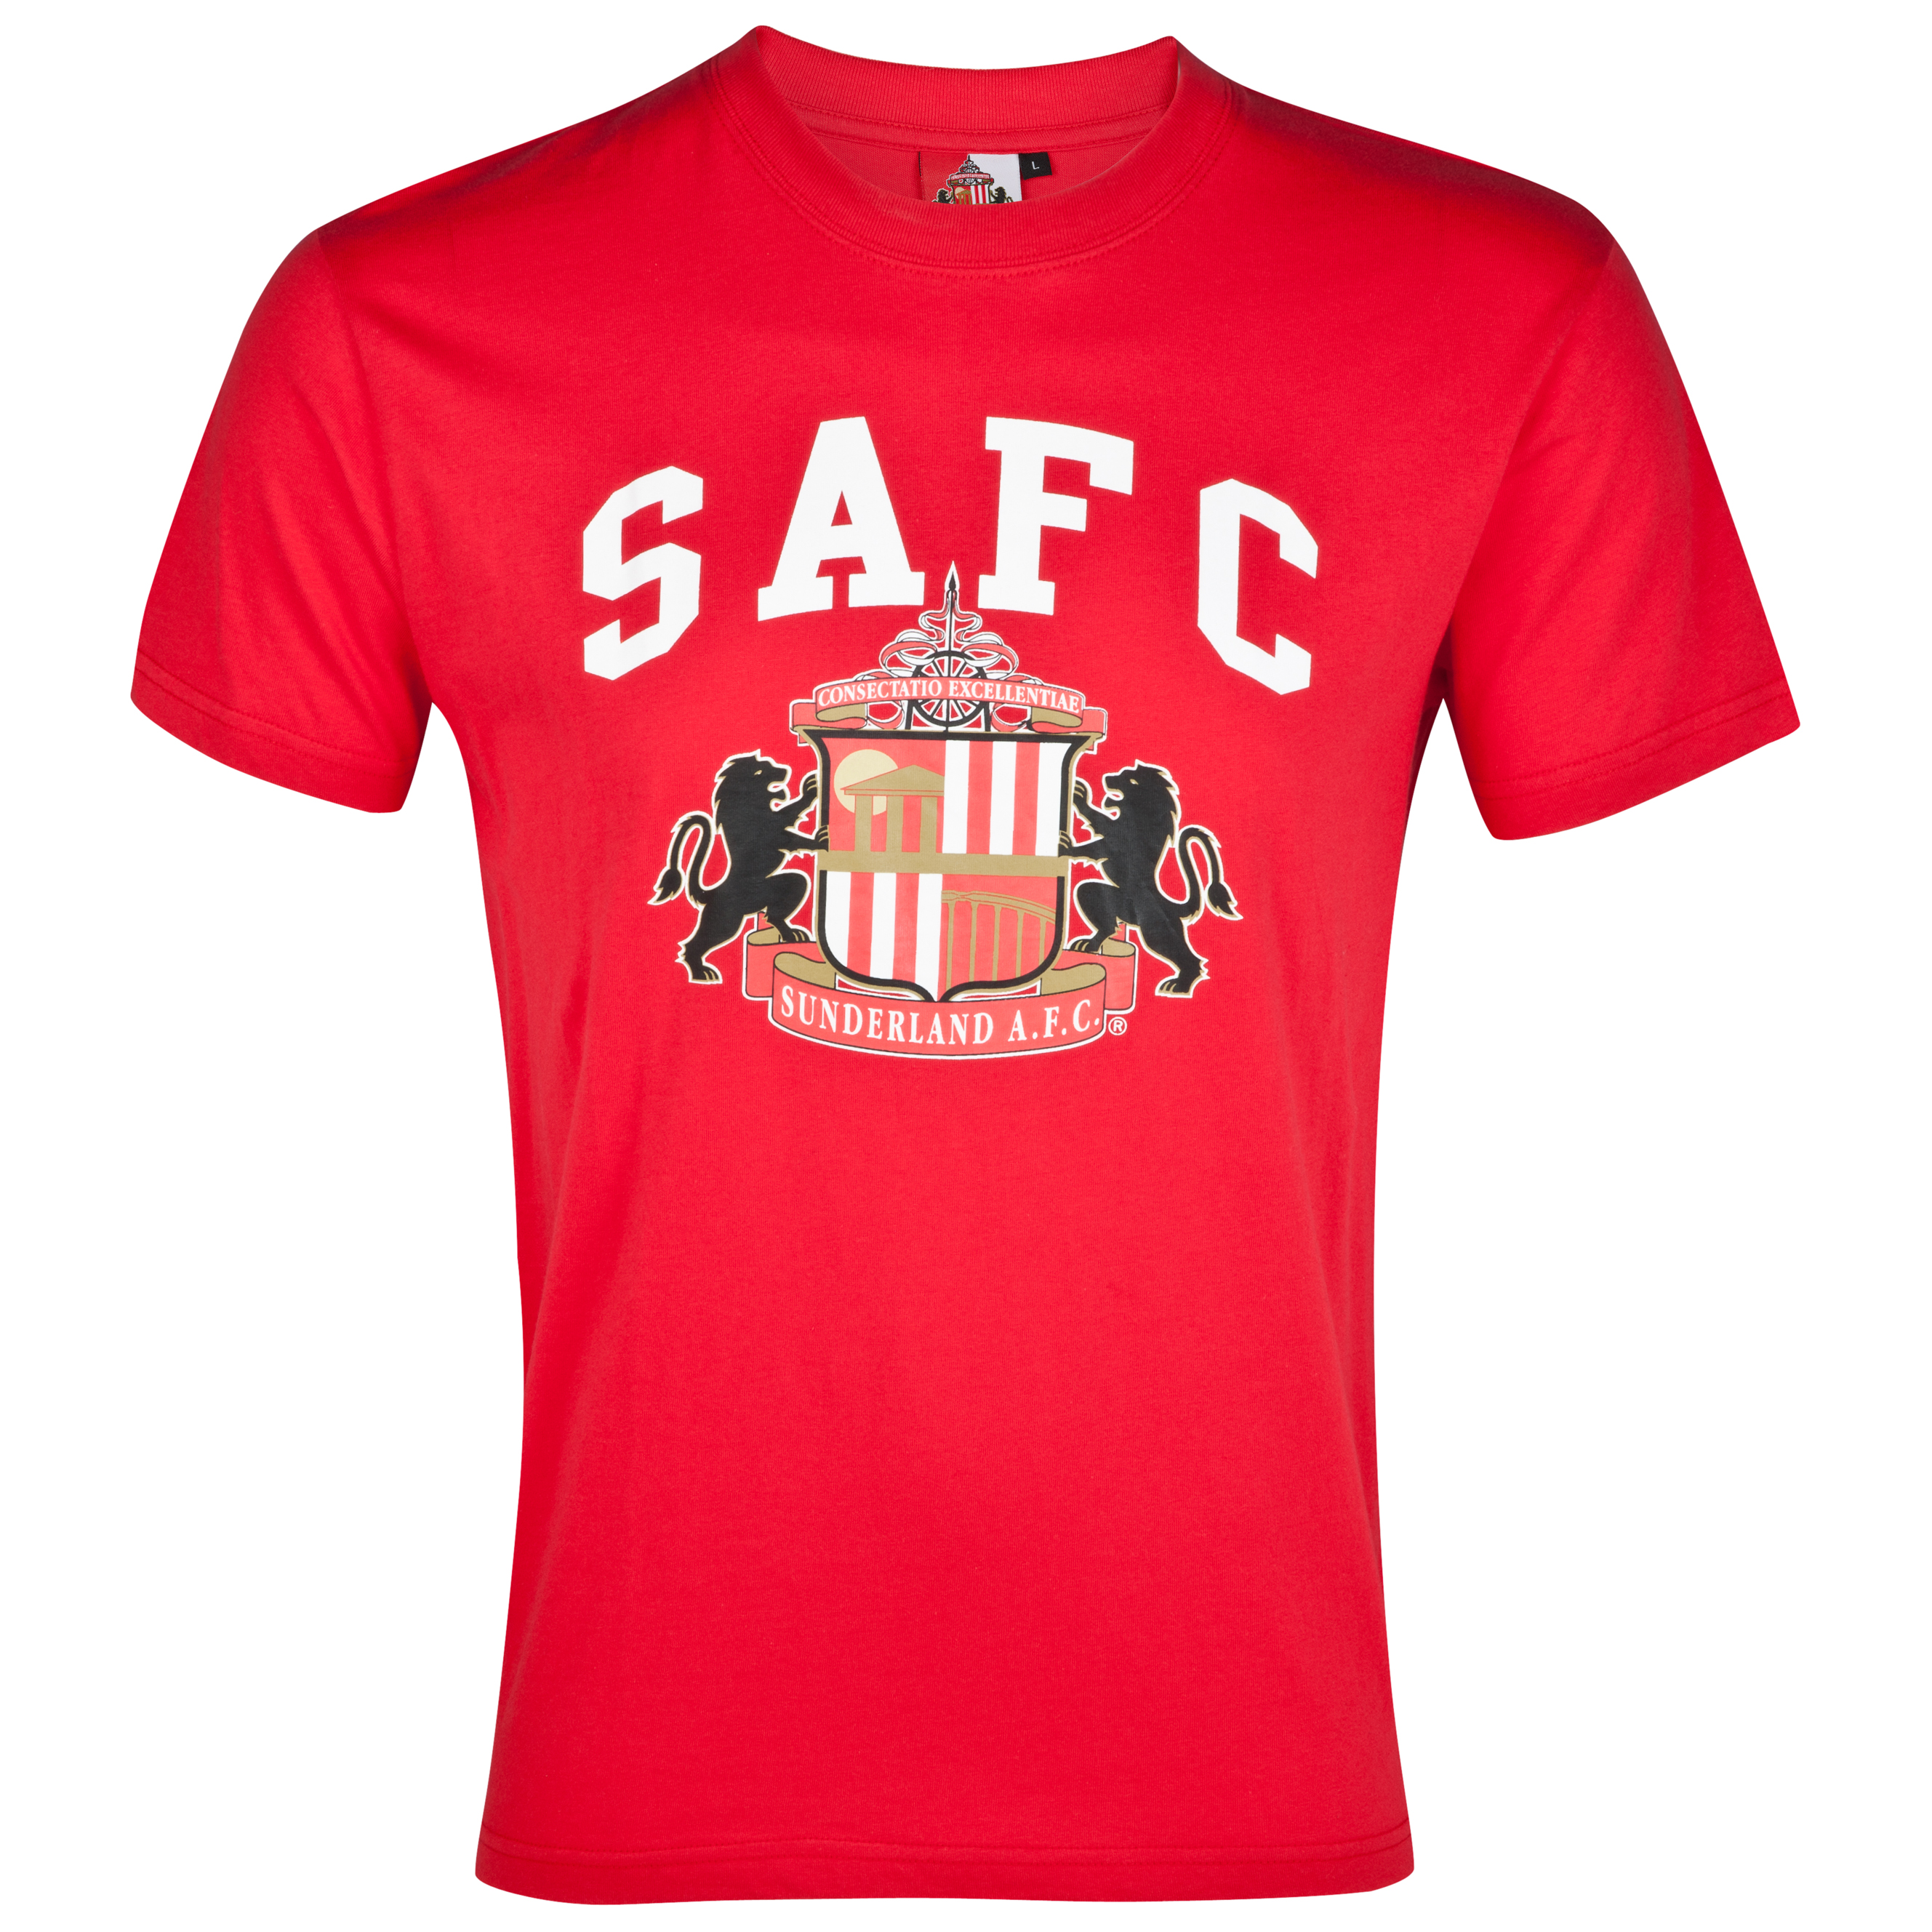 Sunderland Essential Freedom Graphic T-Shirt - Red - Infant Boys